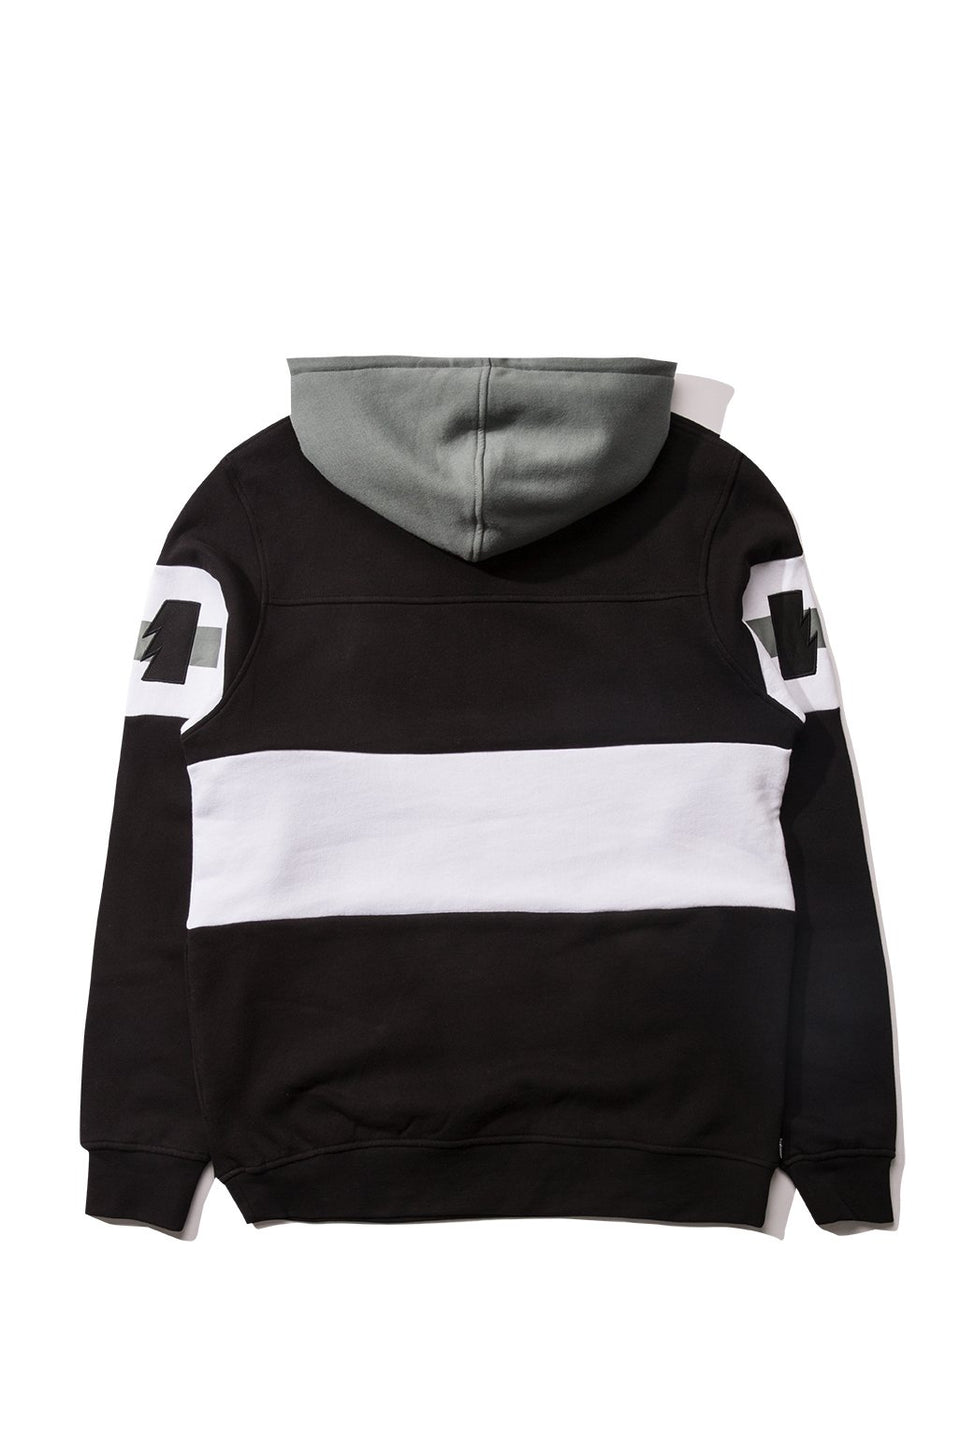 Tilly Pullover Hoodie